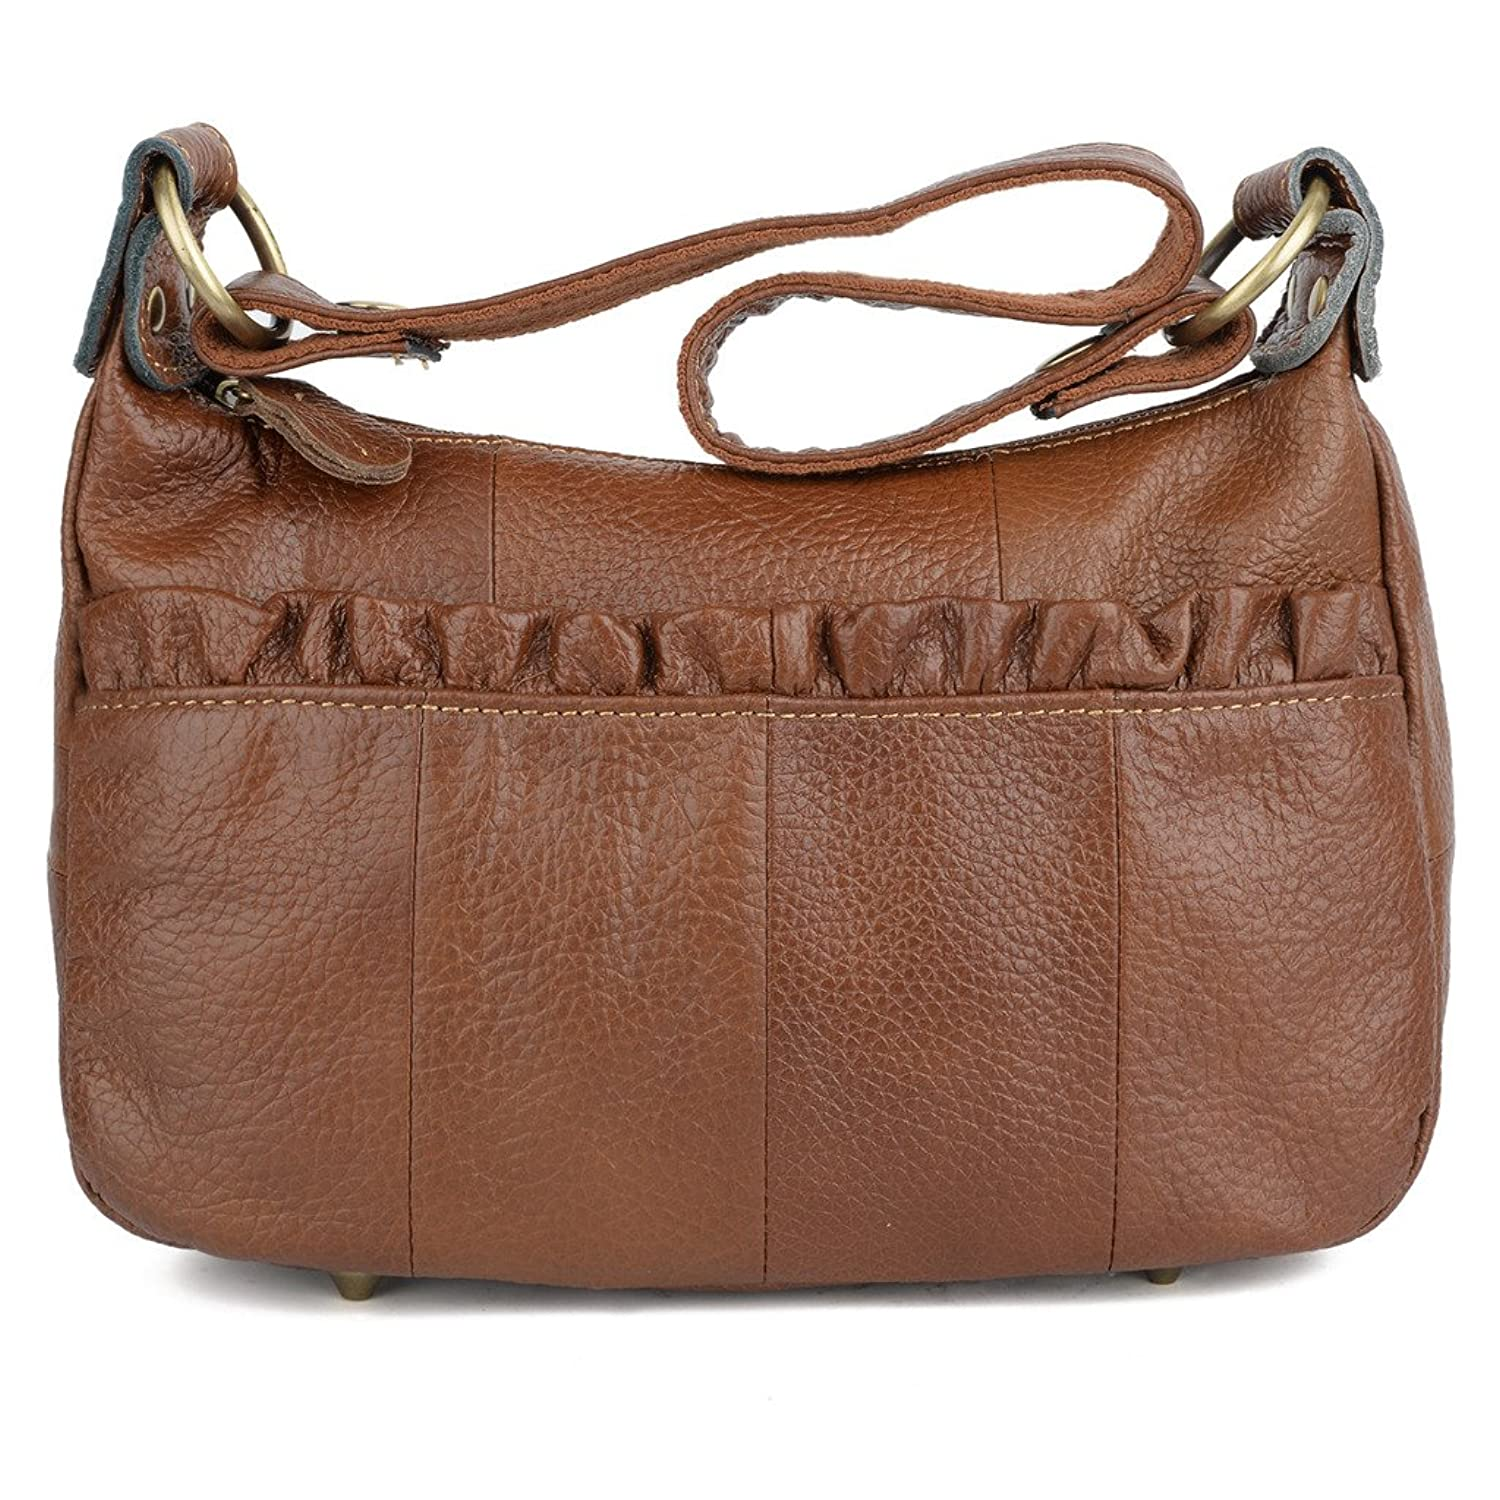 YALUXE Women's Cowhide Real Leather Small Handy Purse Crossbody Shoulder Bag